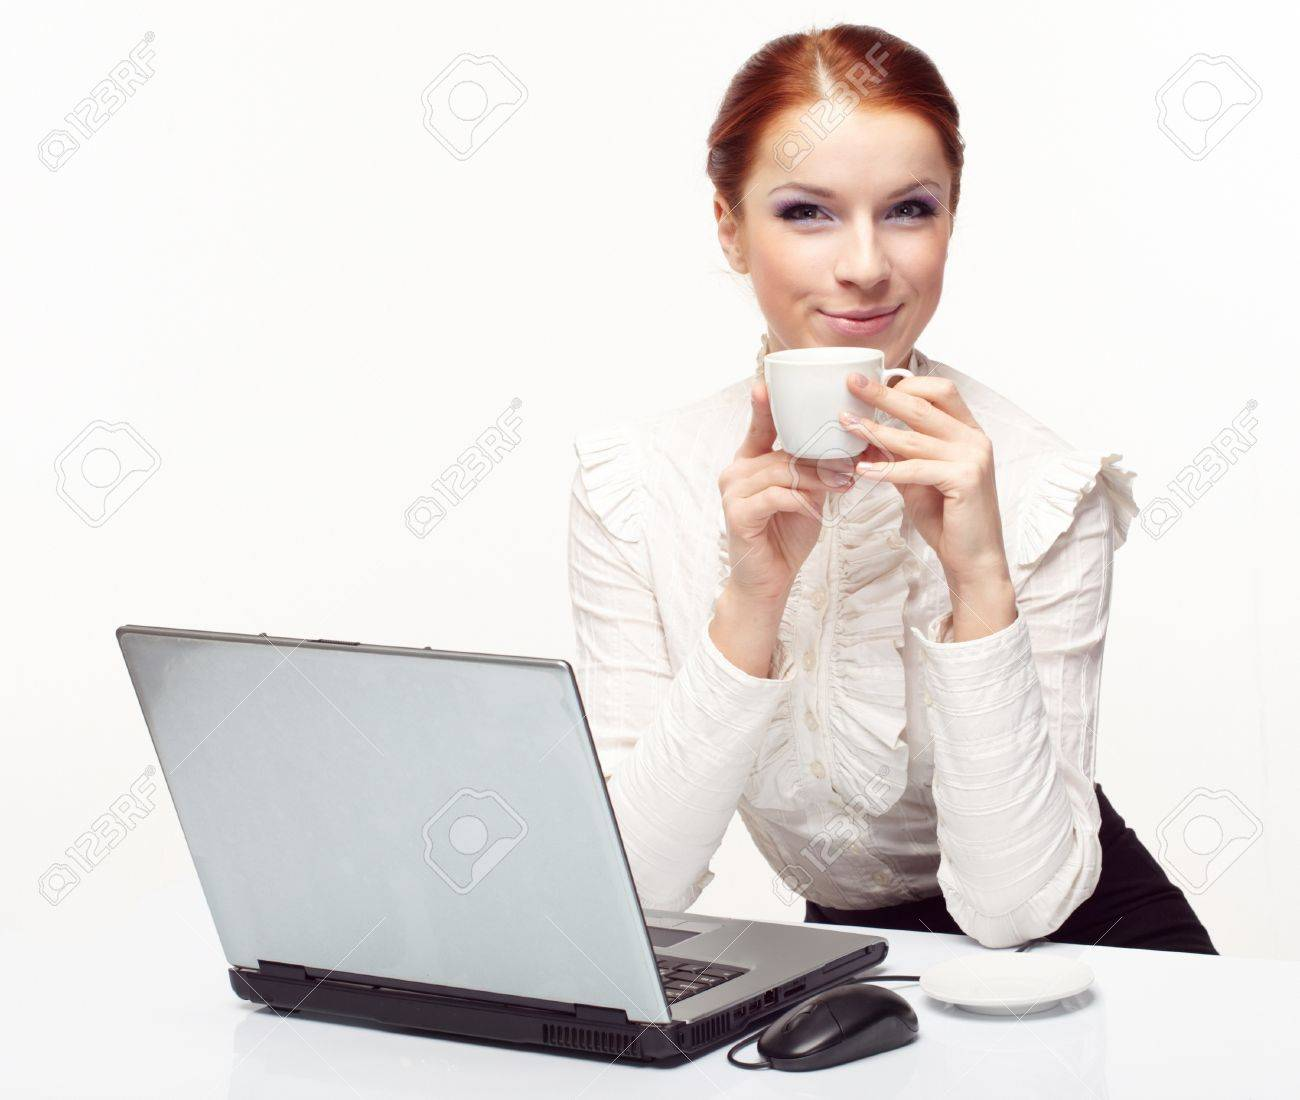 Business woman working on her laptop and drinking coffee. Stock Photo - 8597398